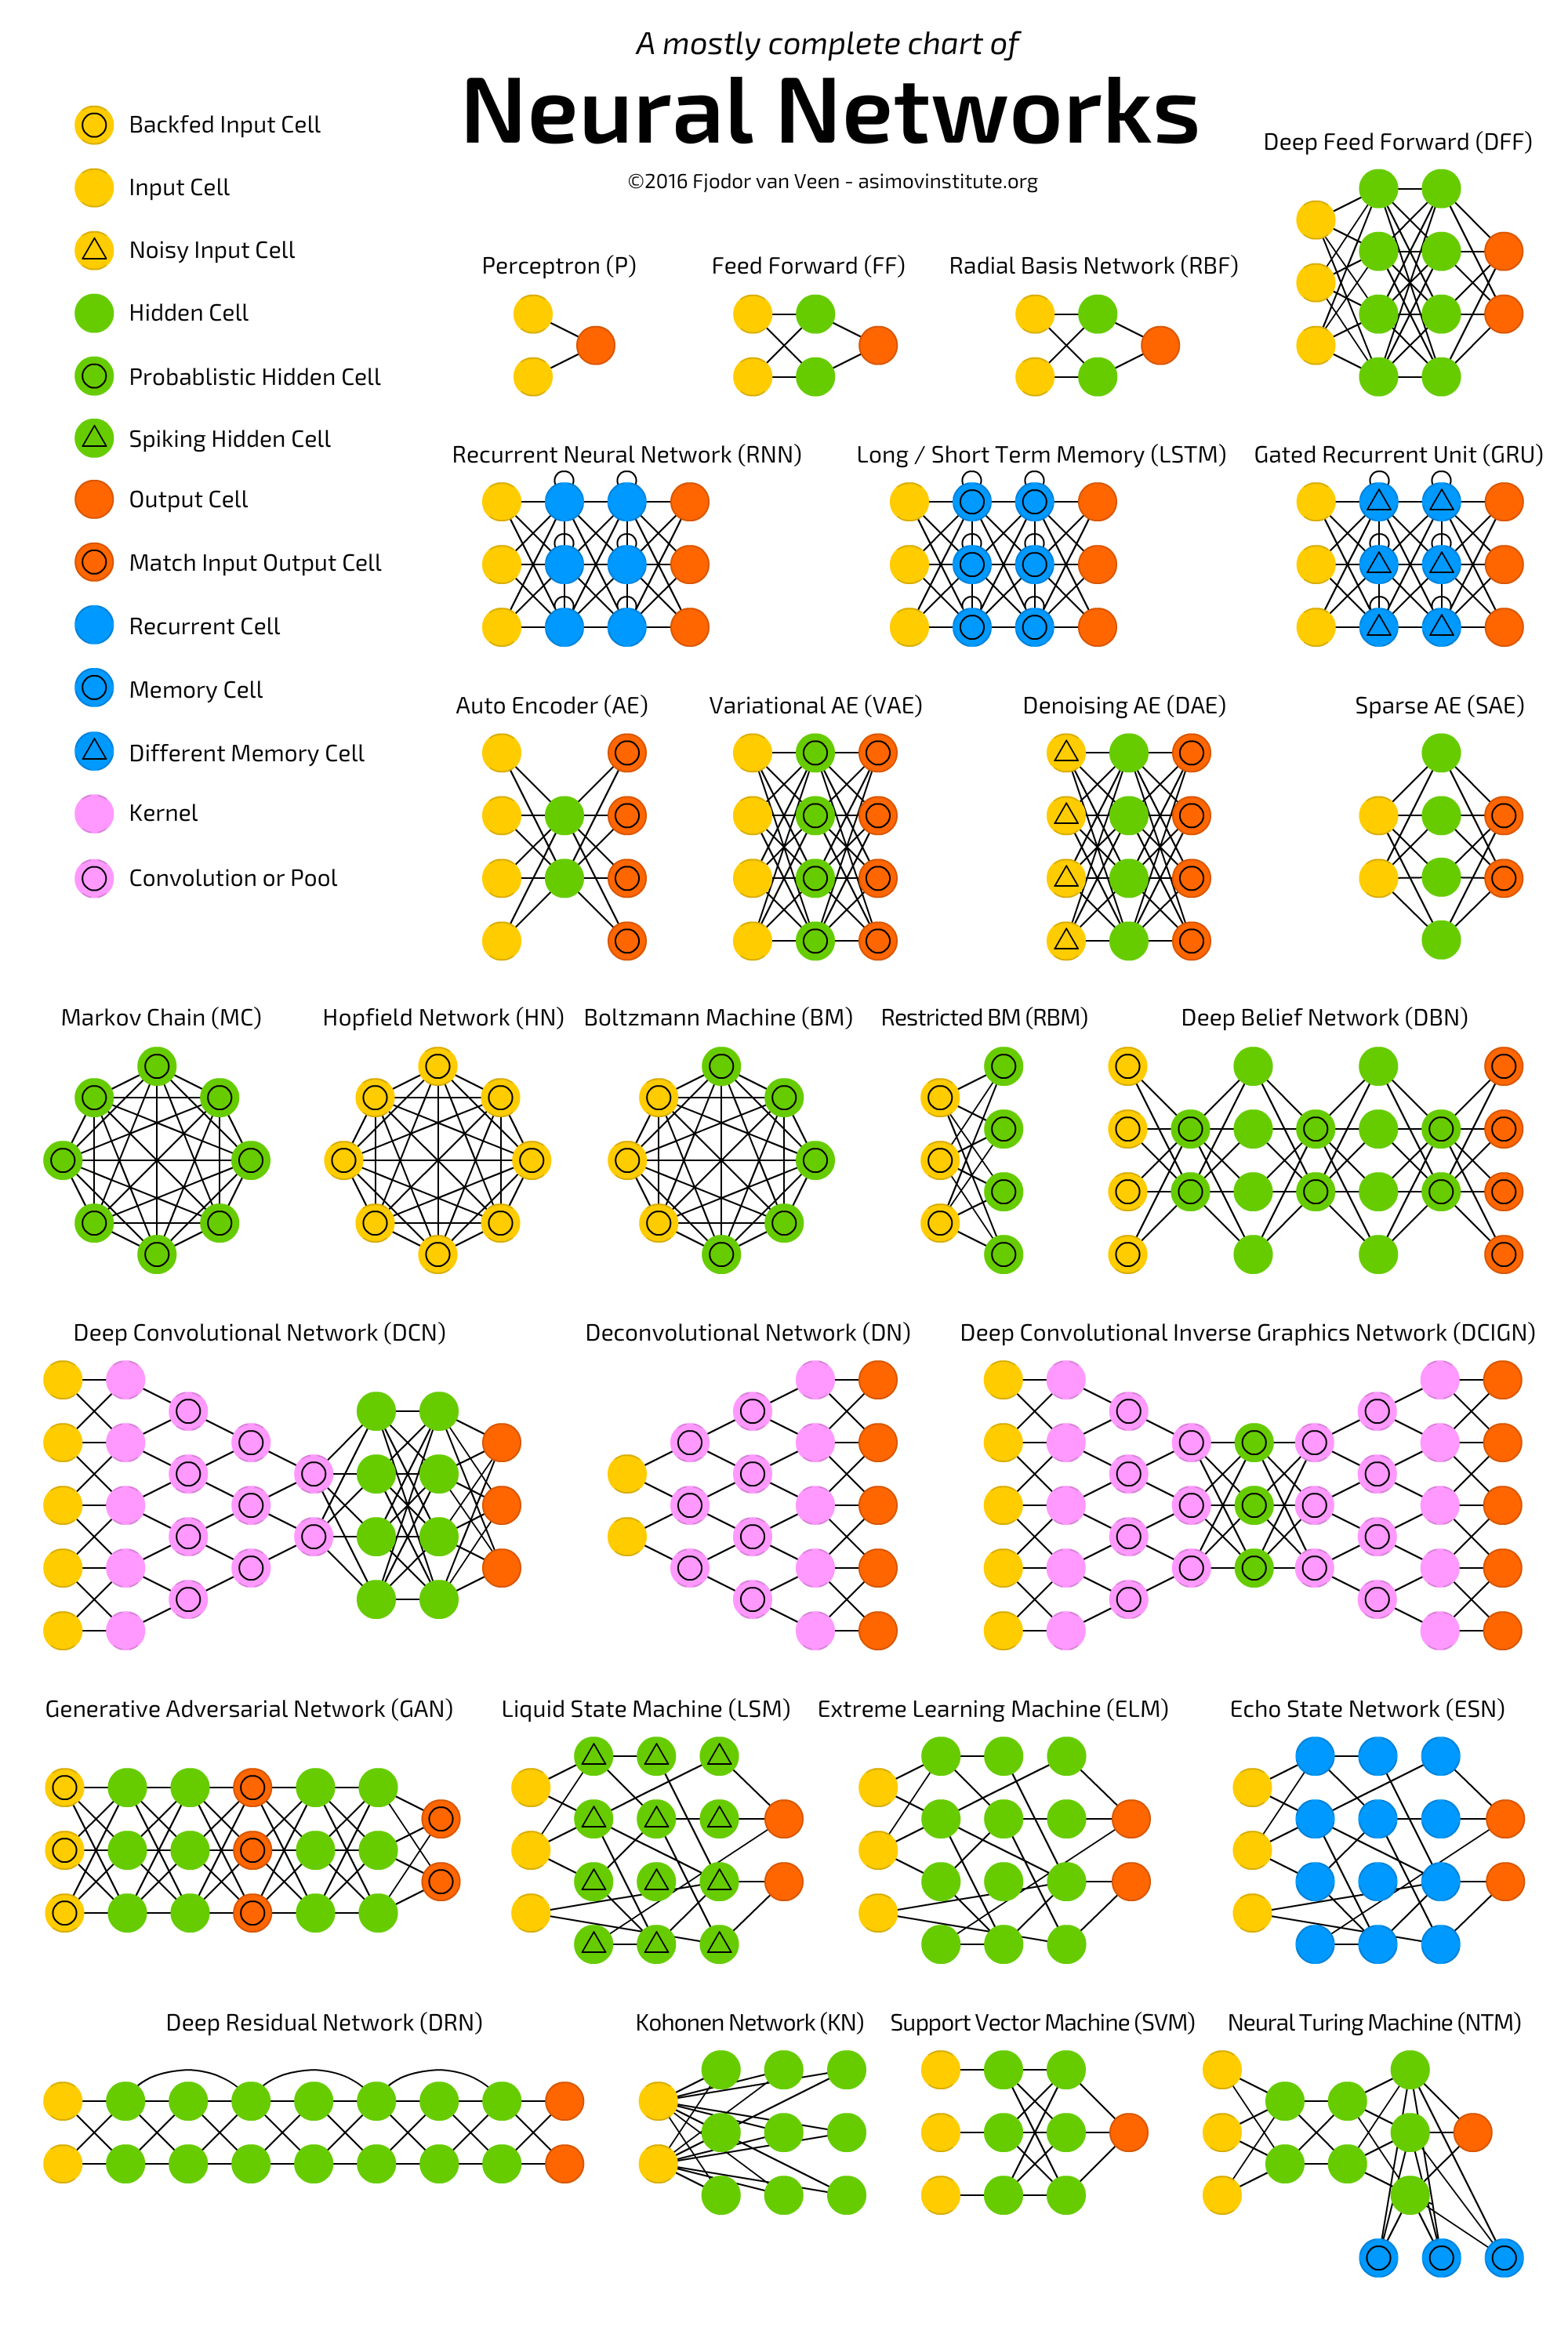 A chart of neural networks